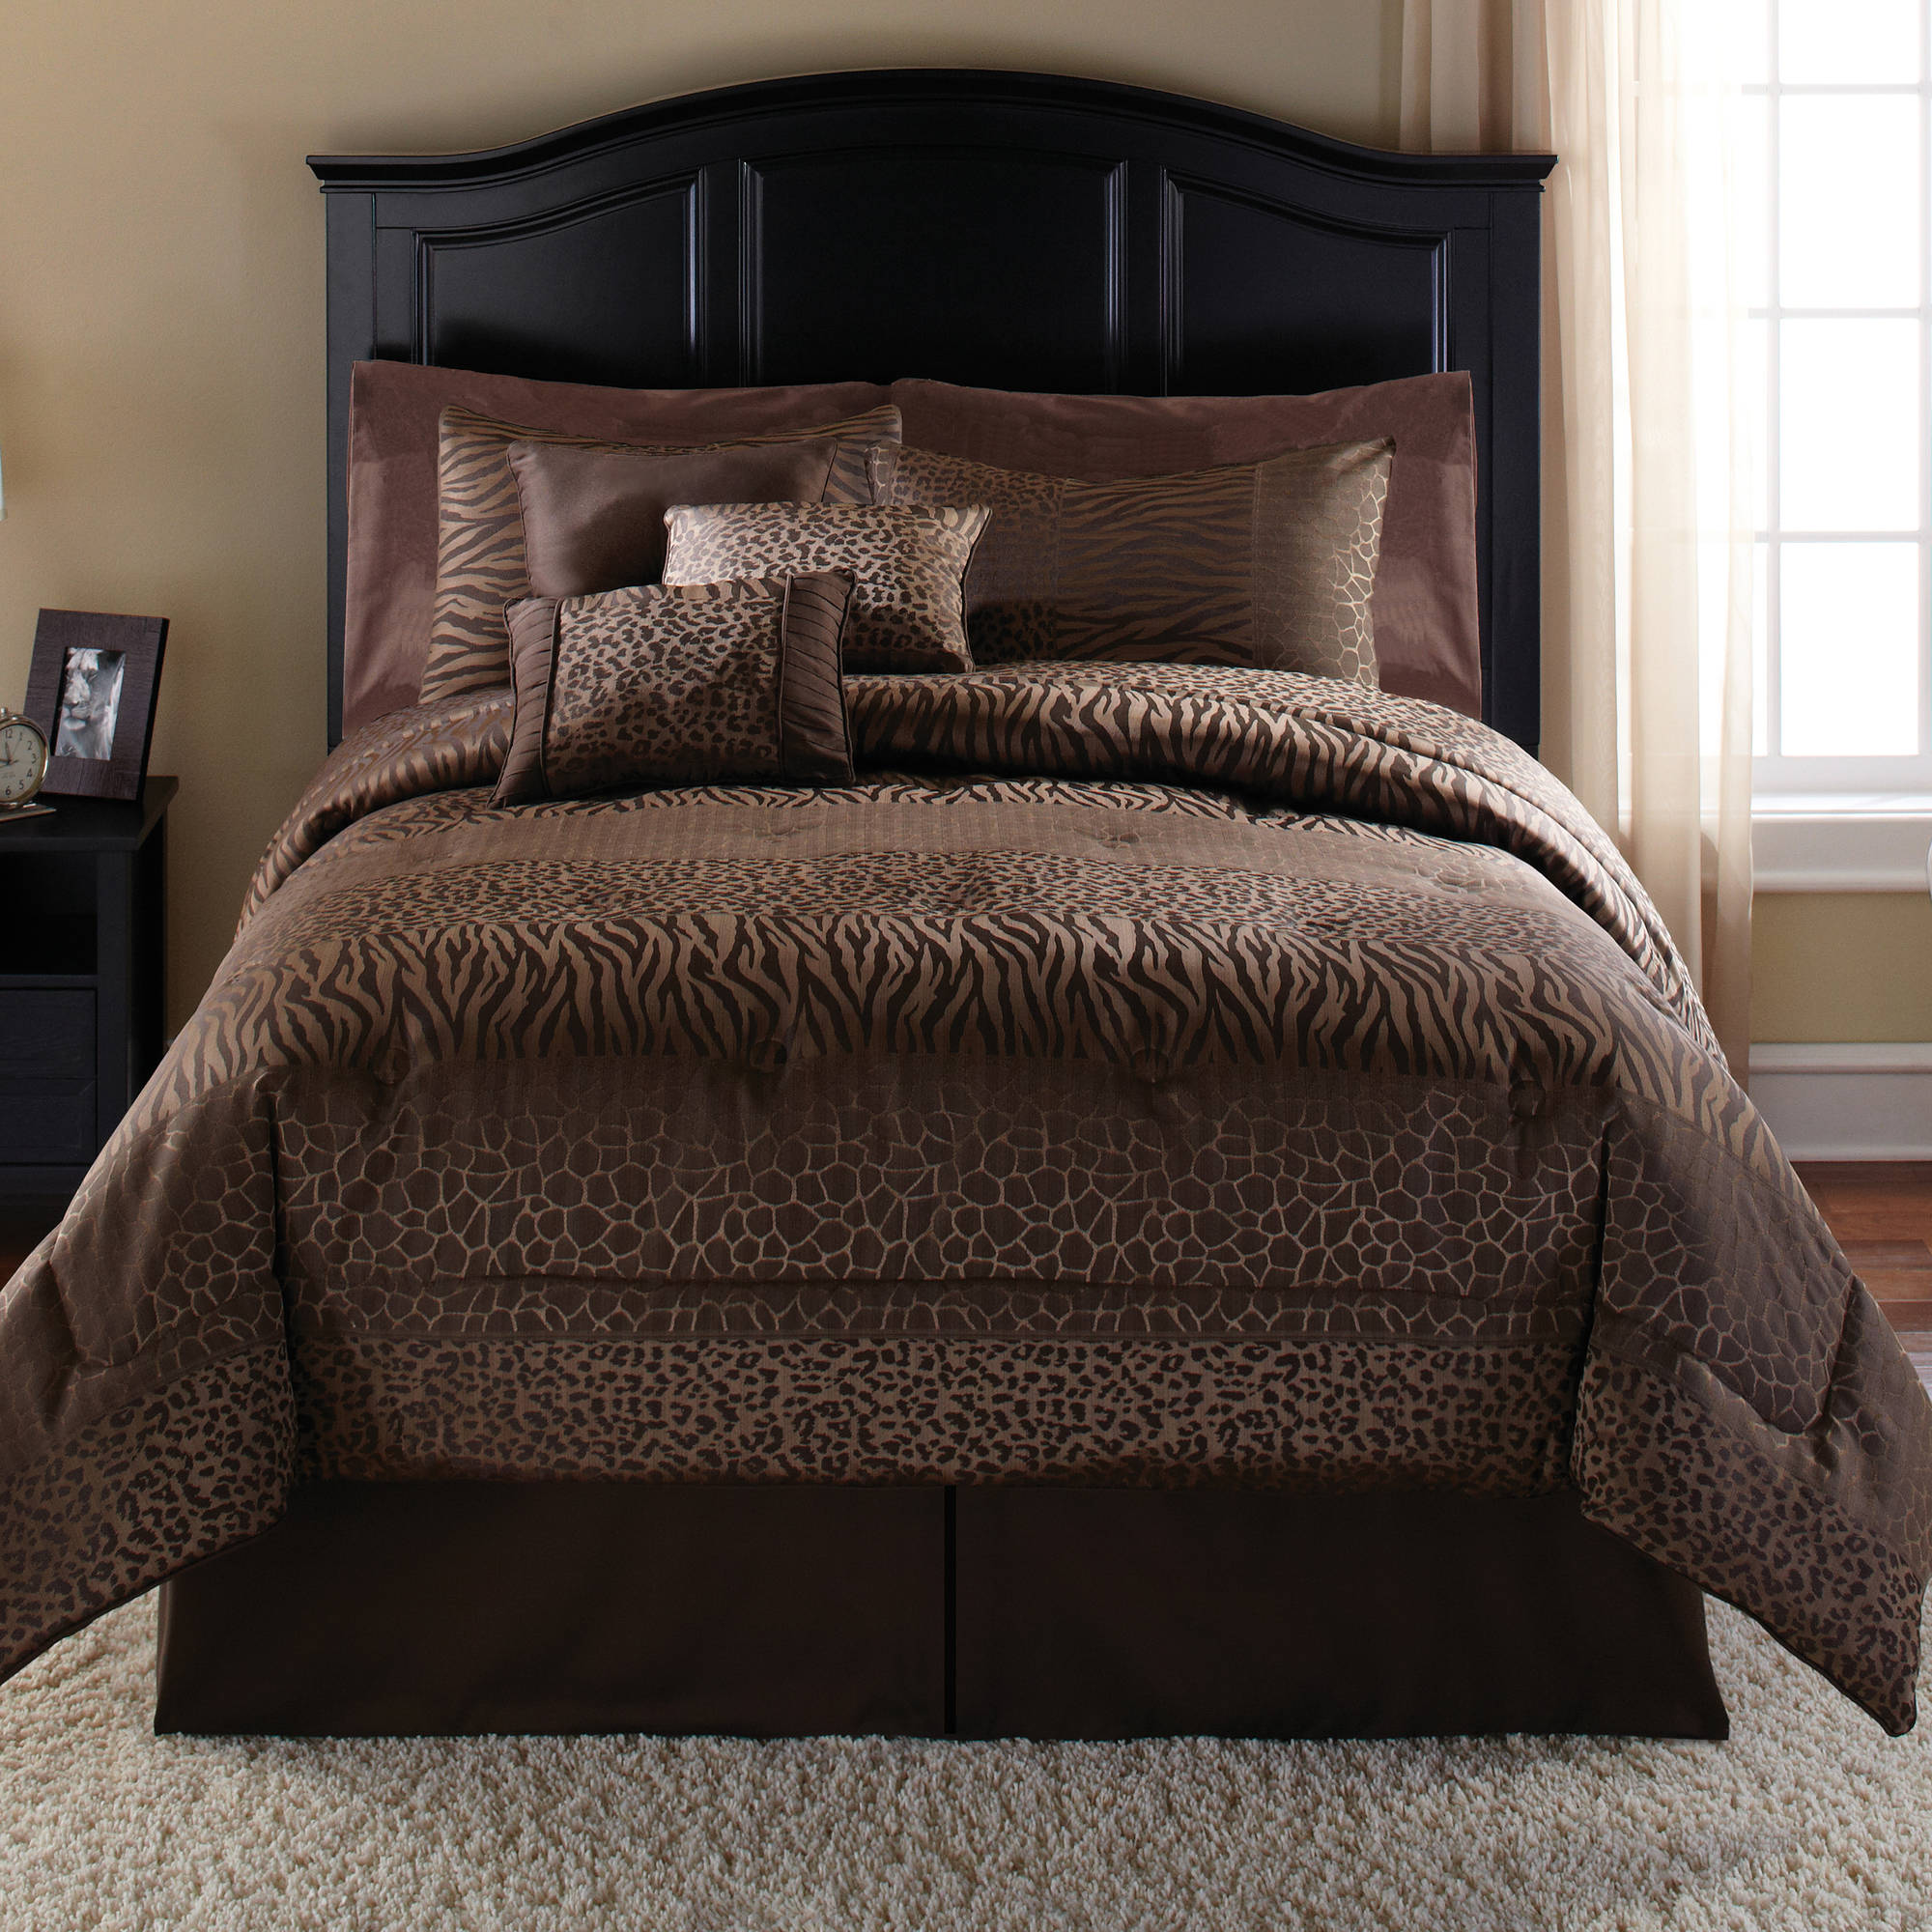 walmart quilt bedspreads walmart bedspreads walmart bedspreads suppliers and at alibabacom. Black Bedroom Furniture Sets. Home Design Ideas